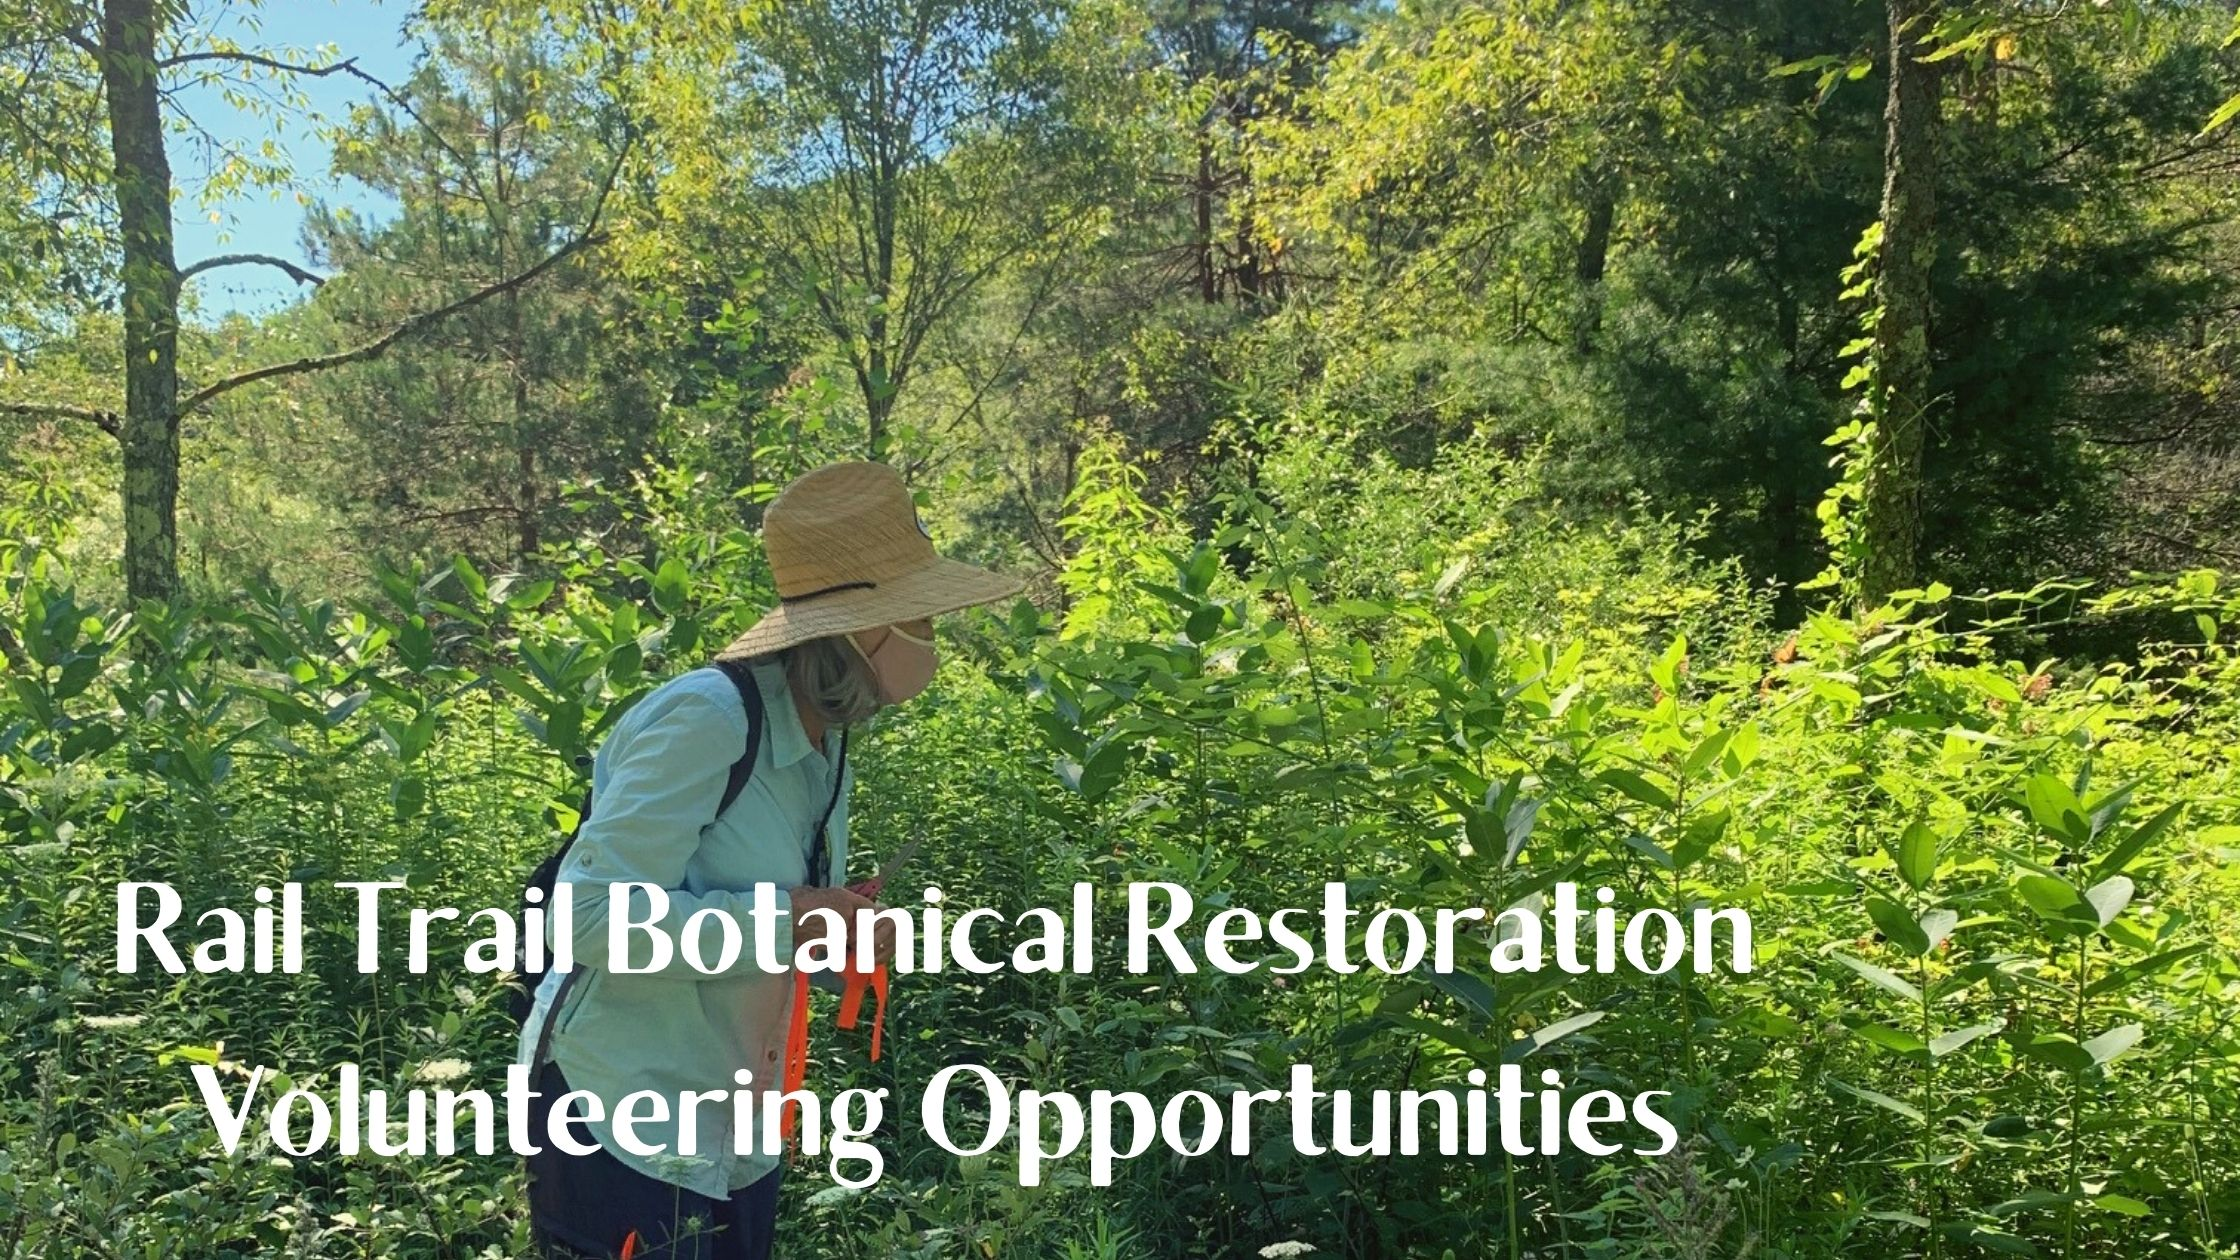 Rail Trail Botanical Restoration